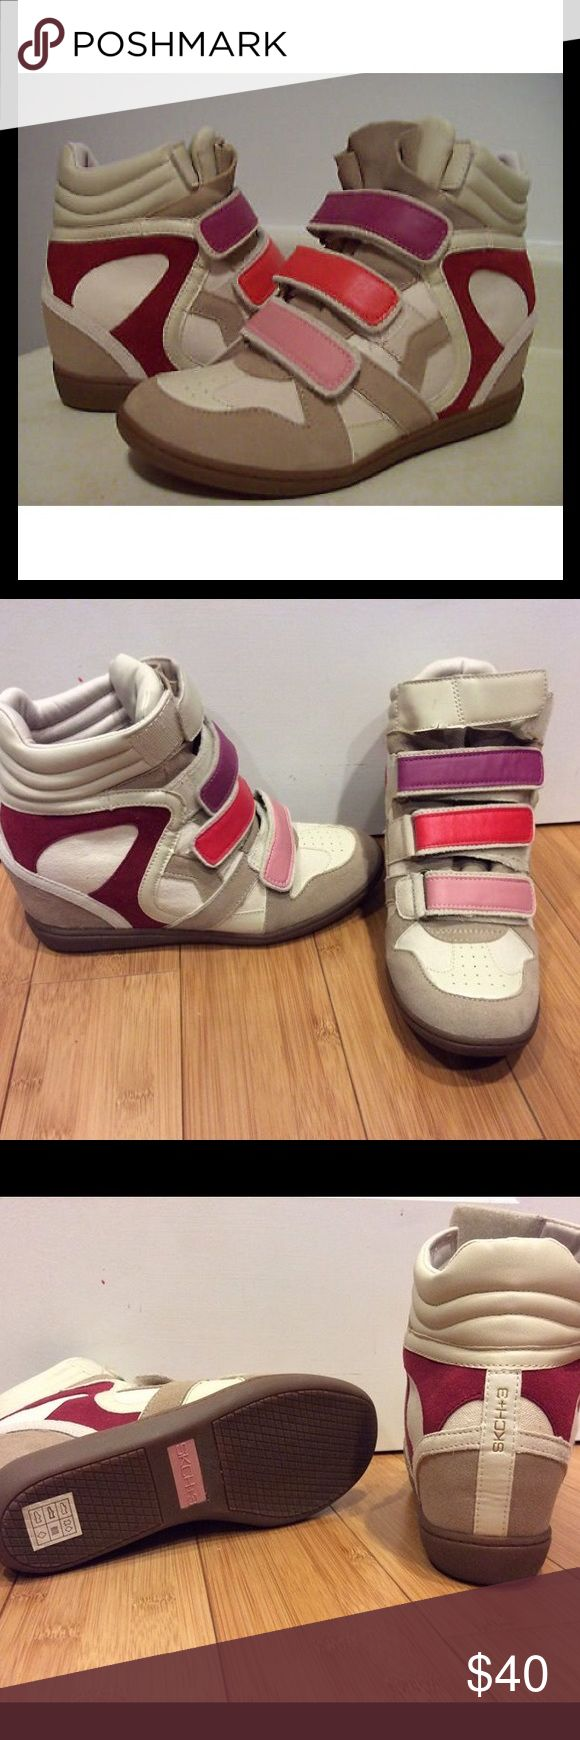 Sckh+3 Wedge sneakers EUC. Tried on and worn around house. Never worn outside. Stickers still on bottom of shoe. Skechers Shoes Sneakers